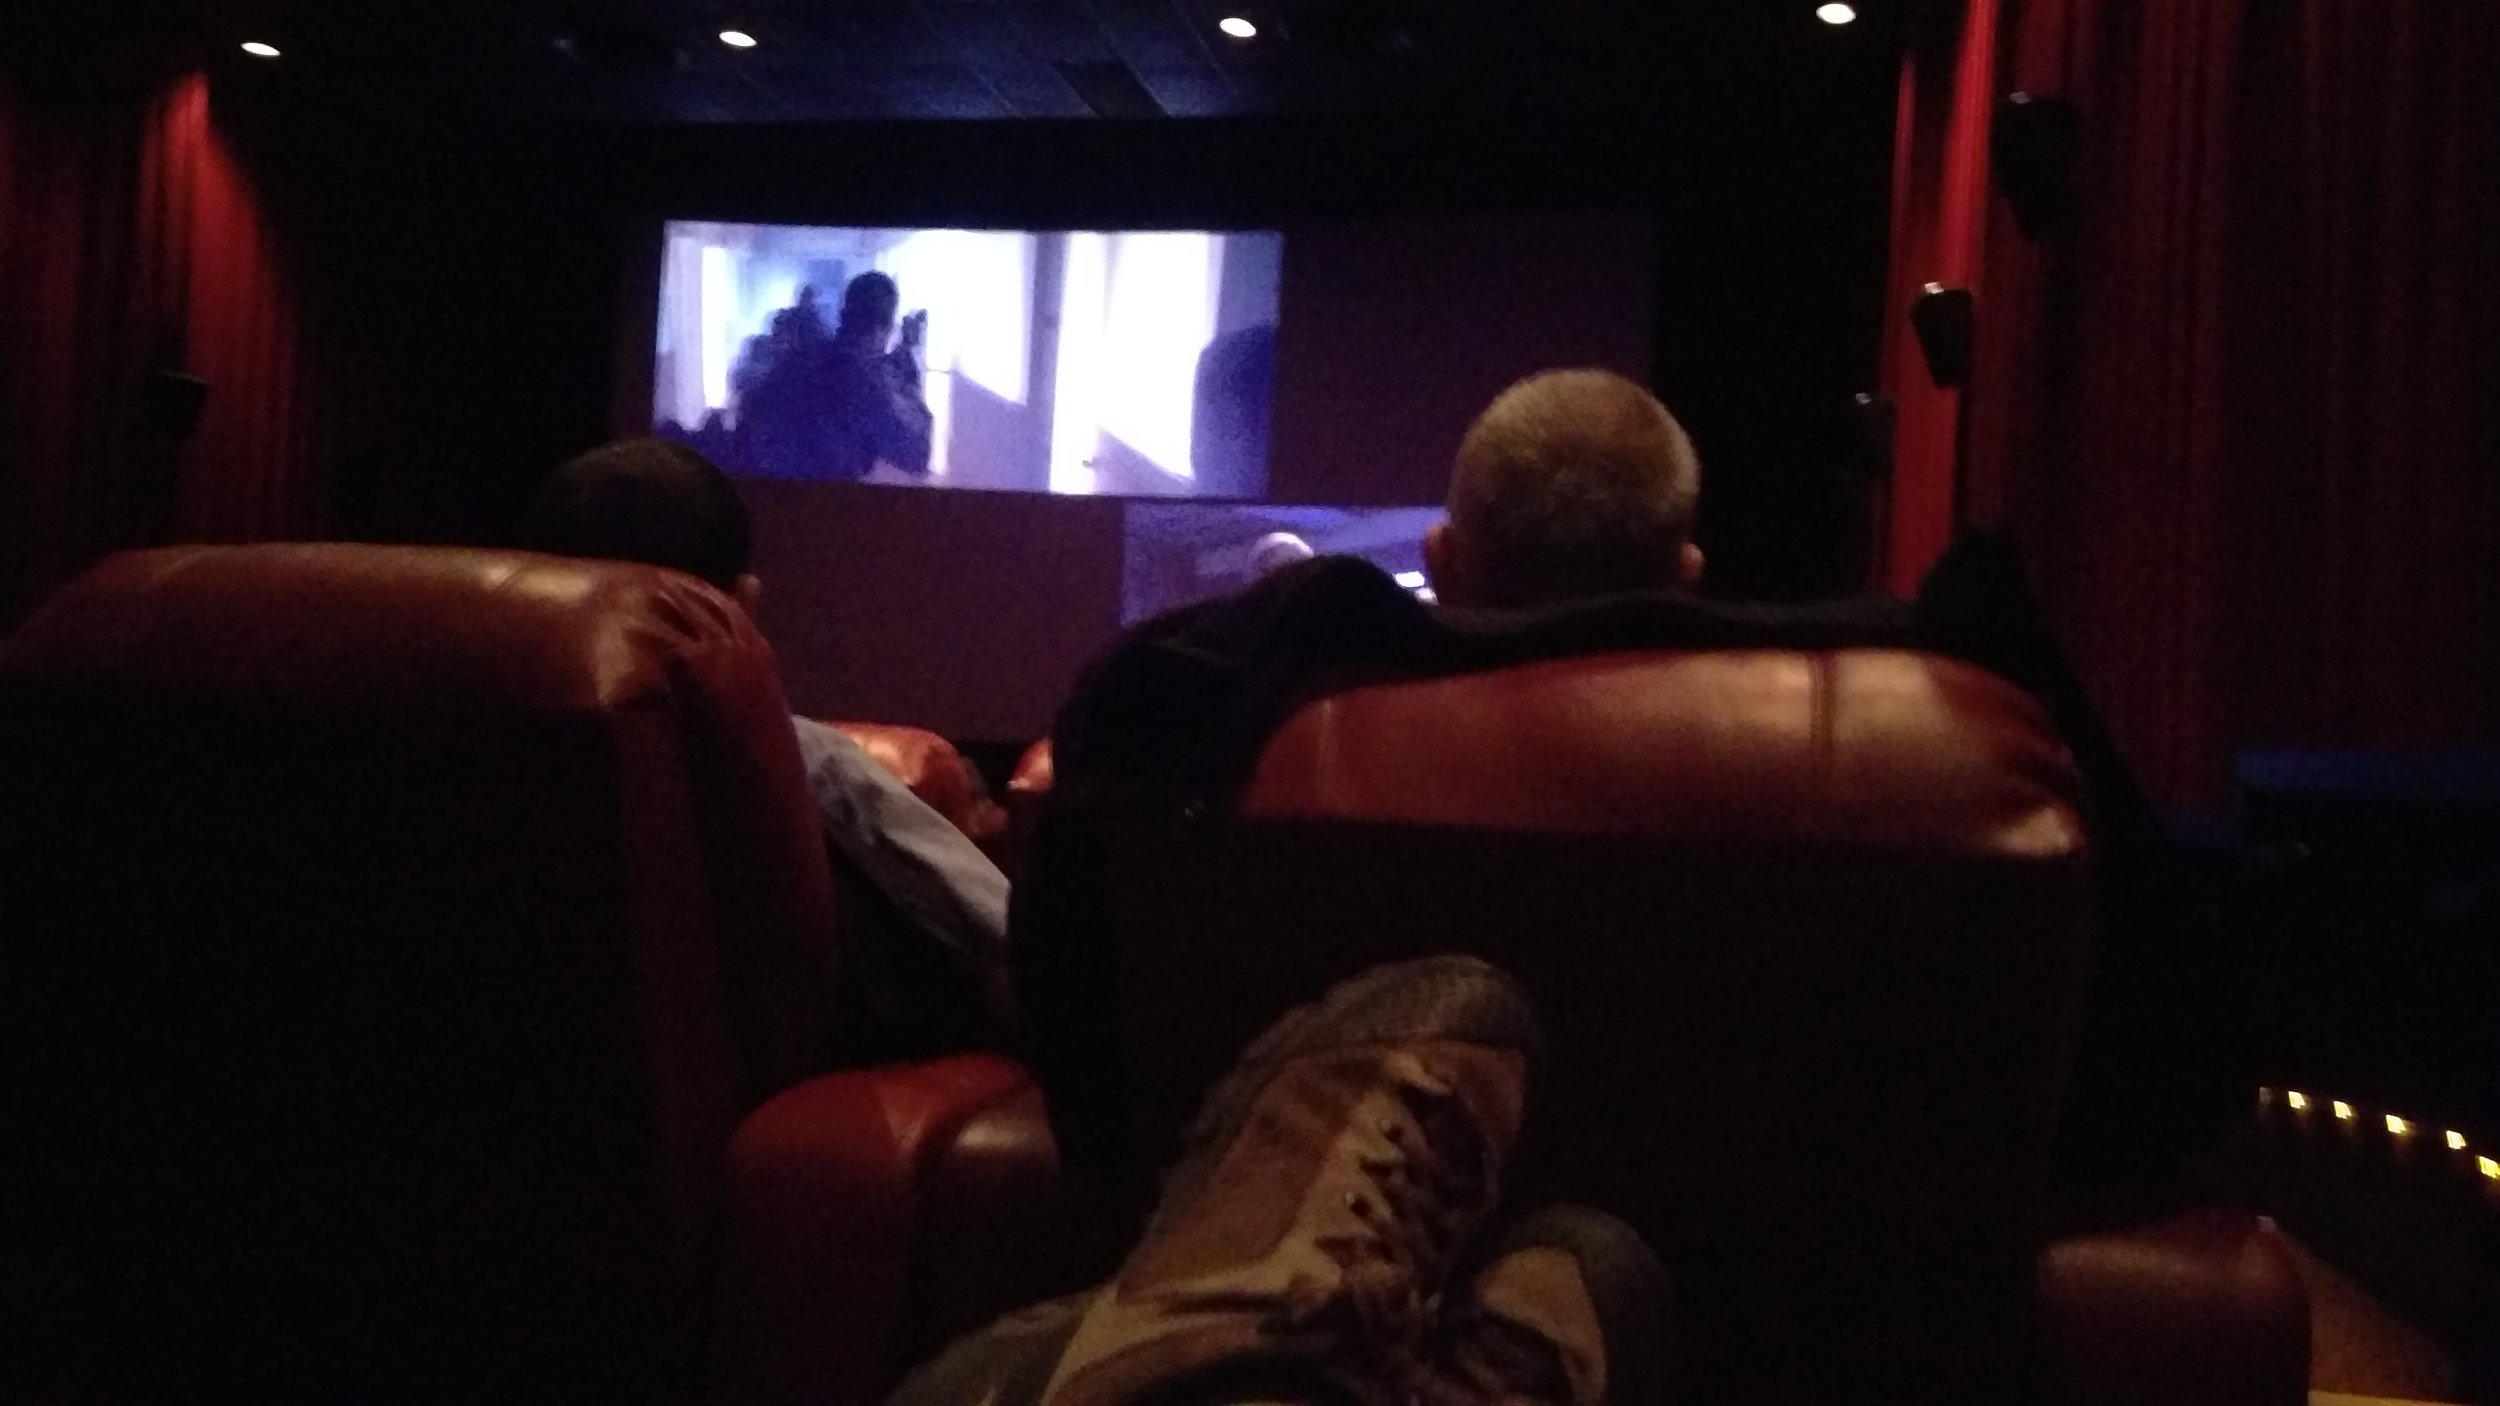 Feet up and ready for the movie.